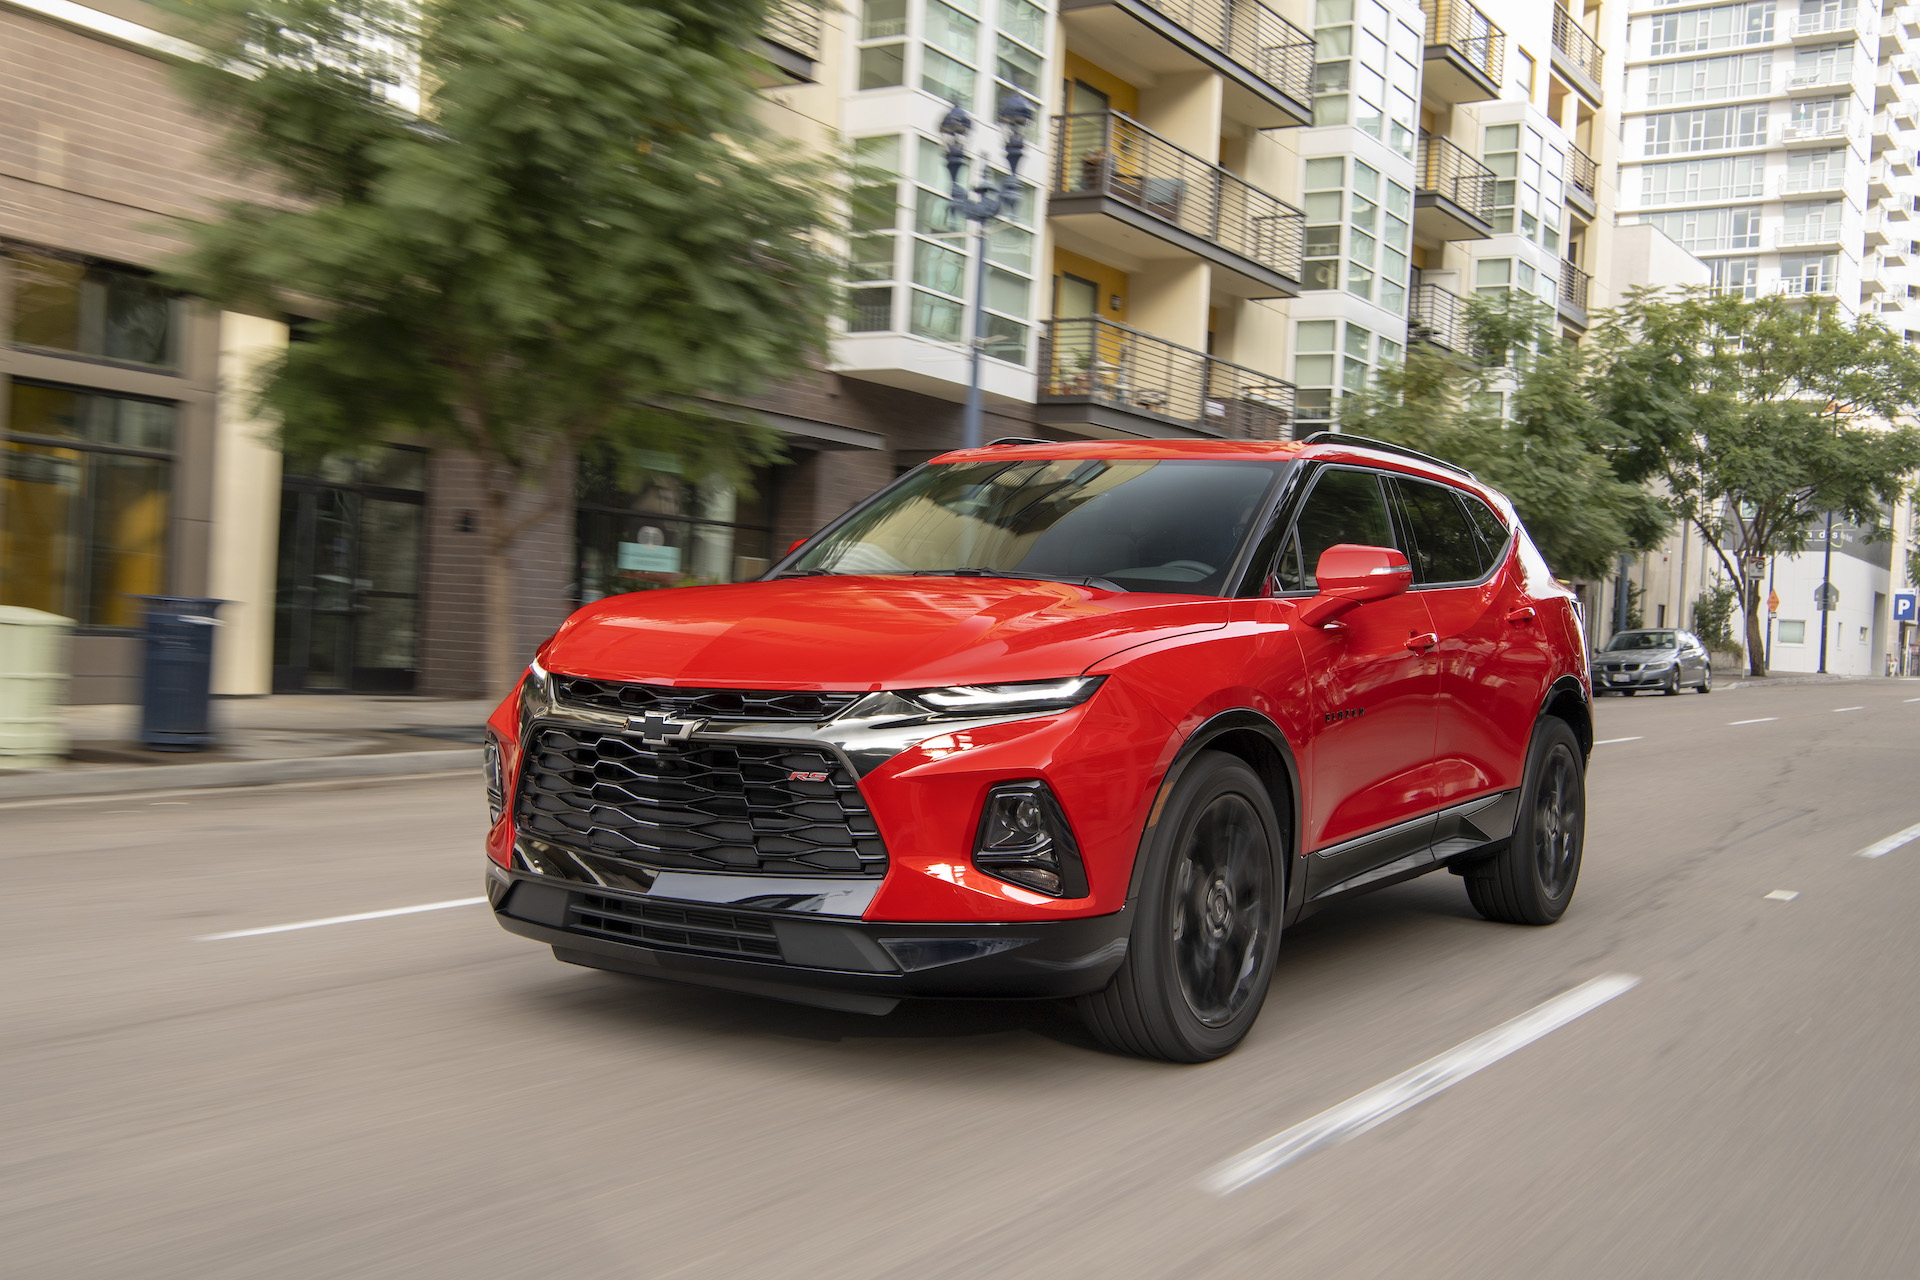 2019 Chevrolet Blazer (Chevy) Review, Ratings, Specs ...